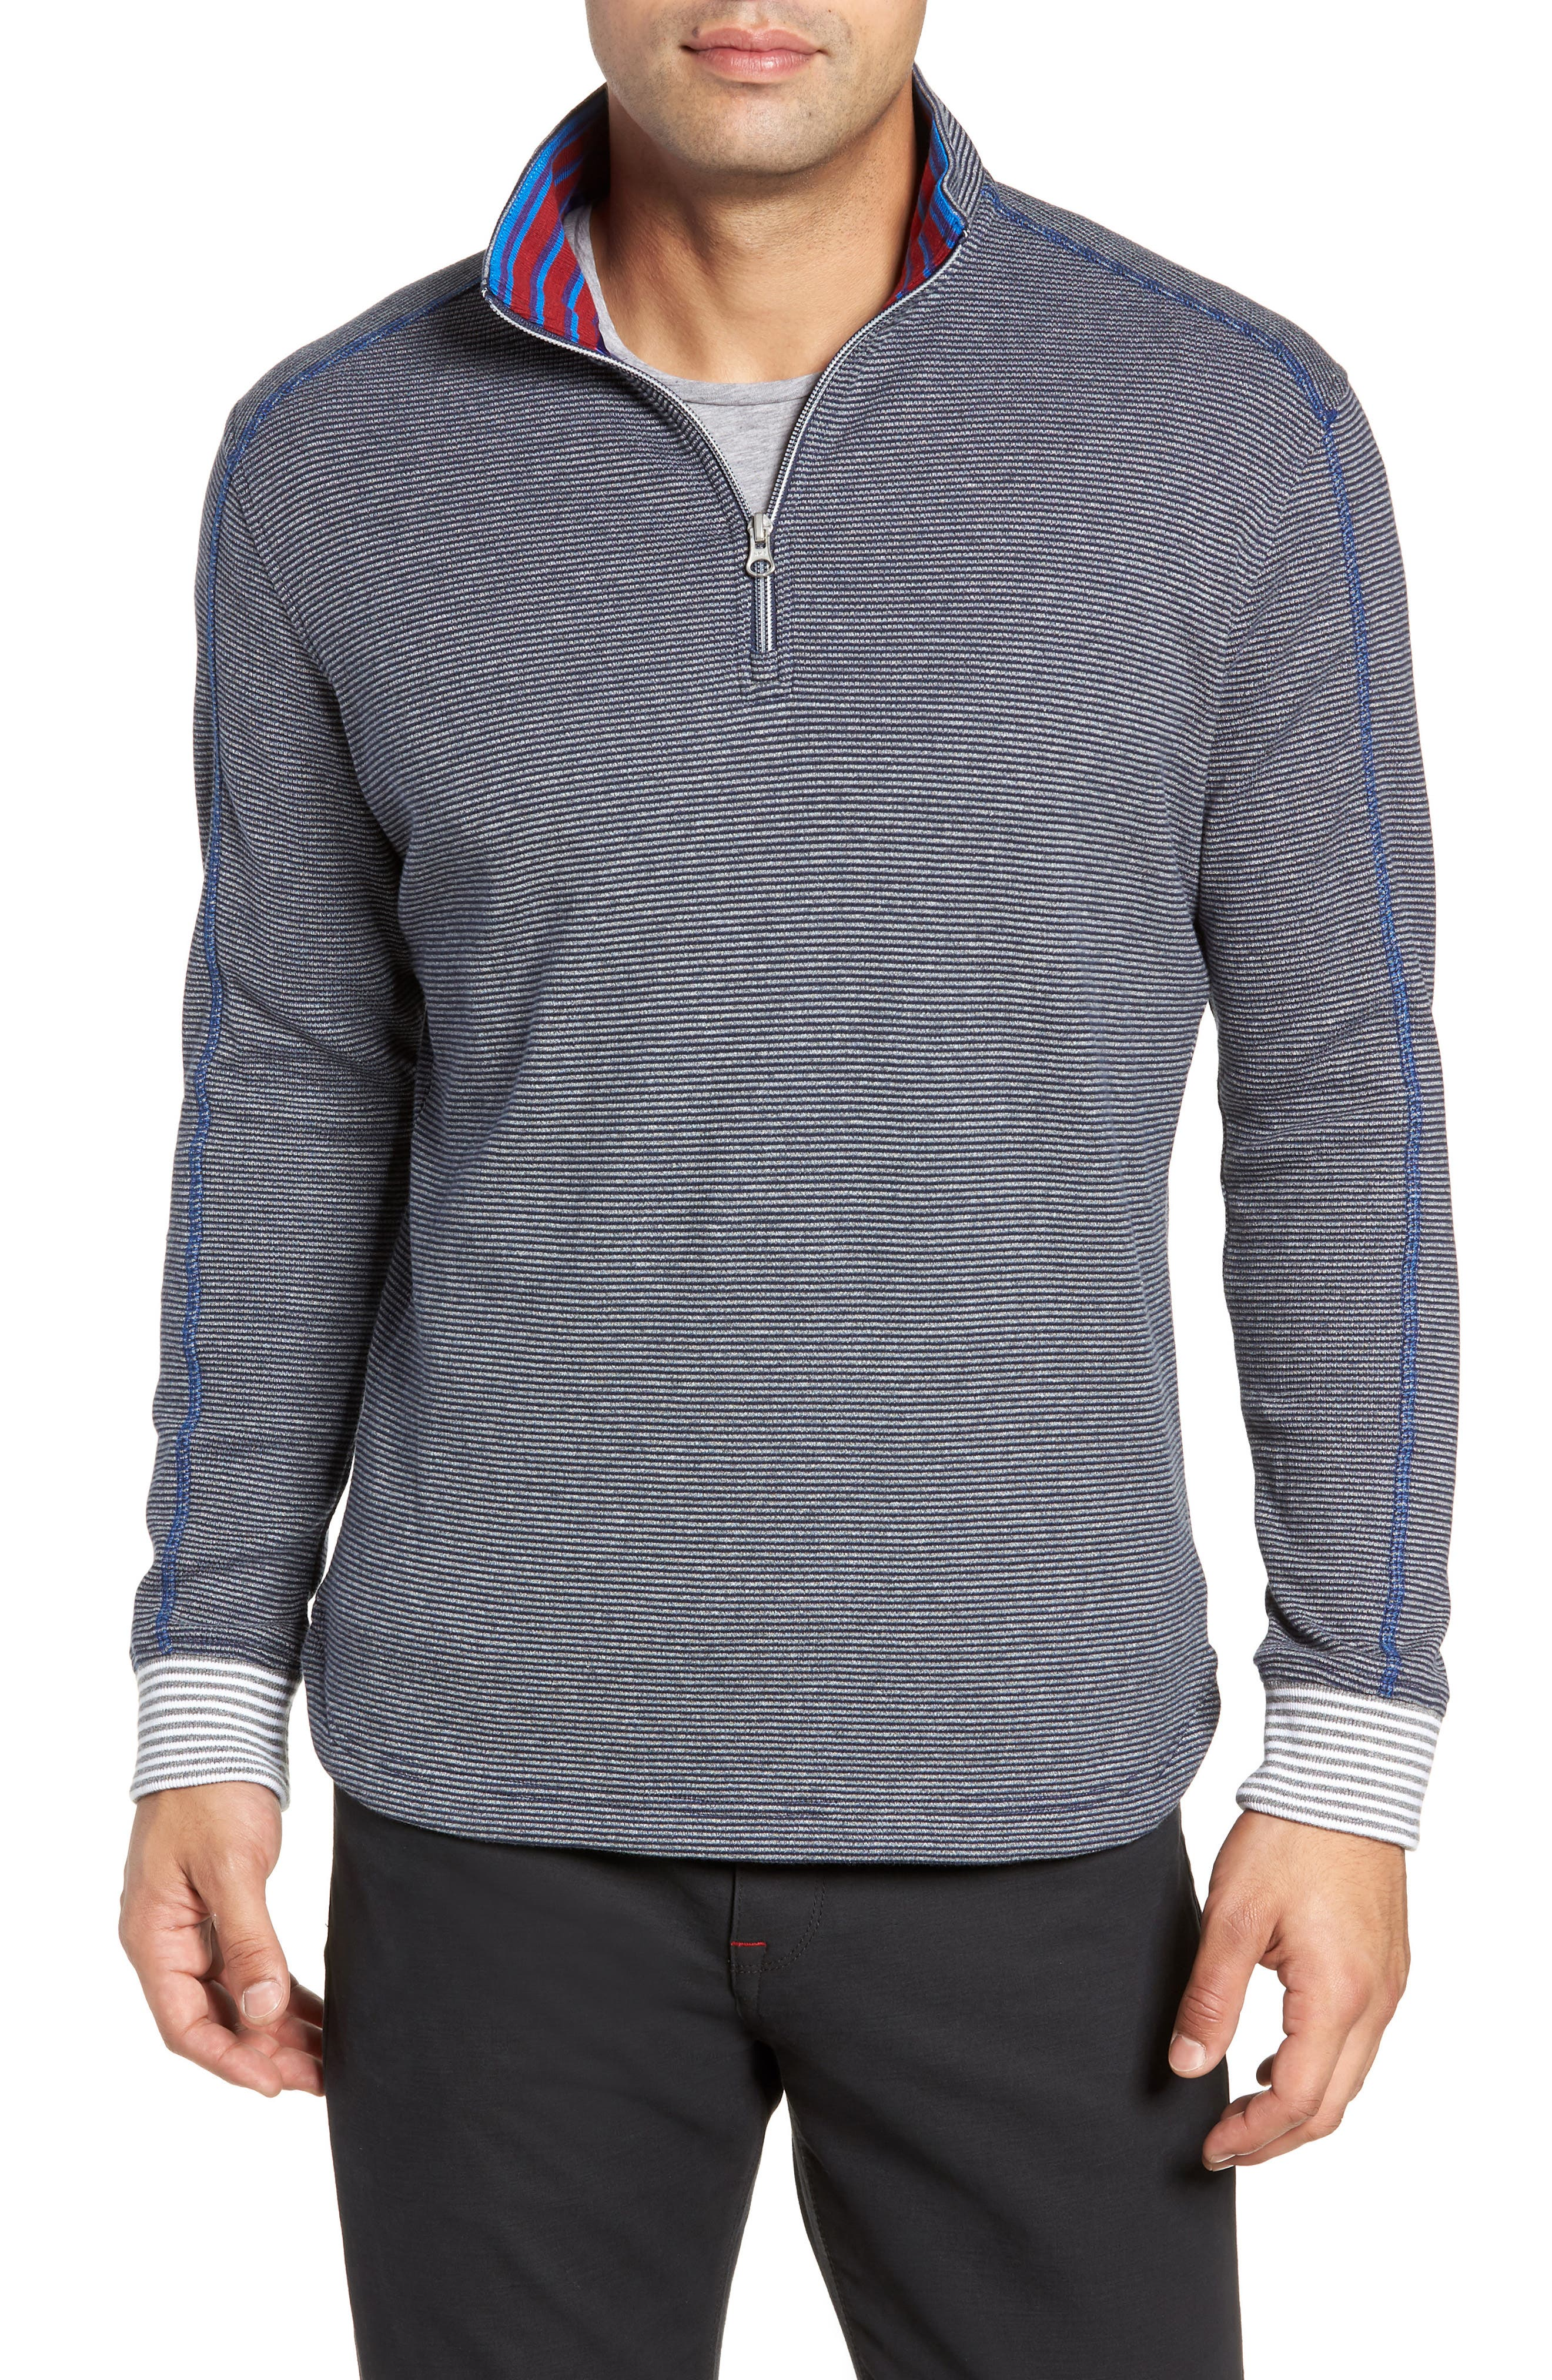 Kitson Classic Fit Stripe Quarter Zip Sweater,                             Main thumbnail 1, color,                             HEATHER NAVY